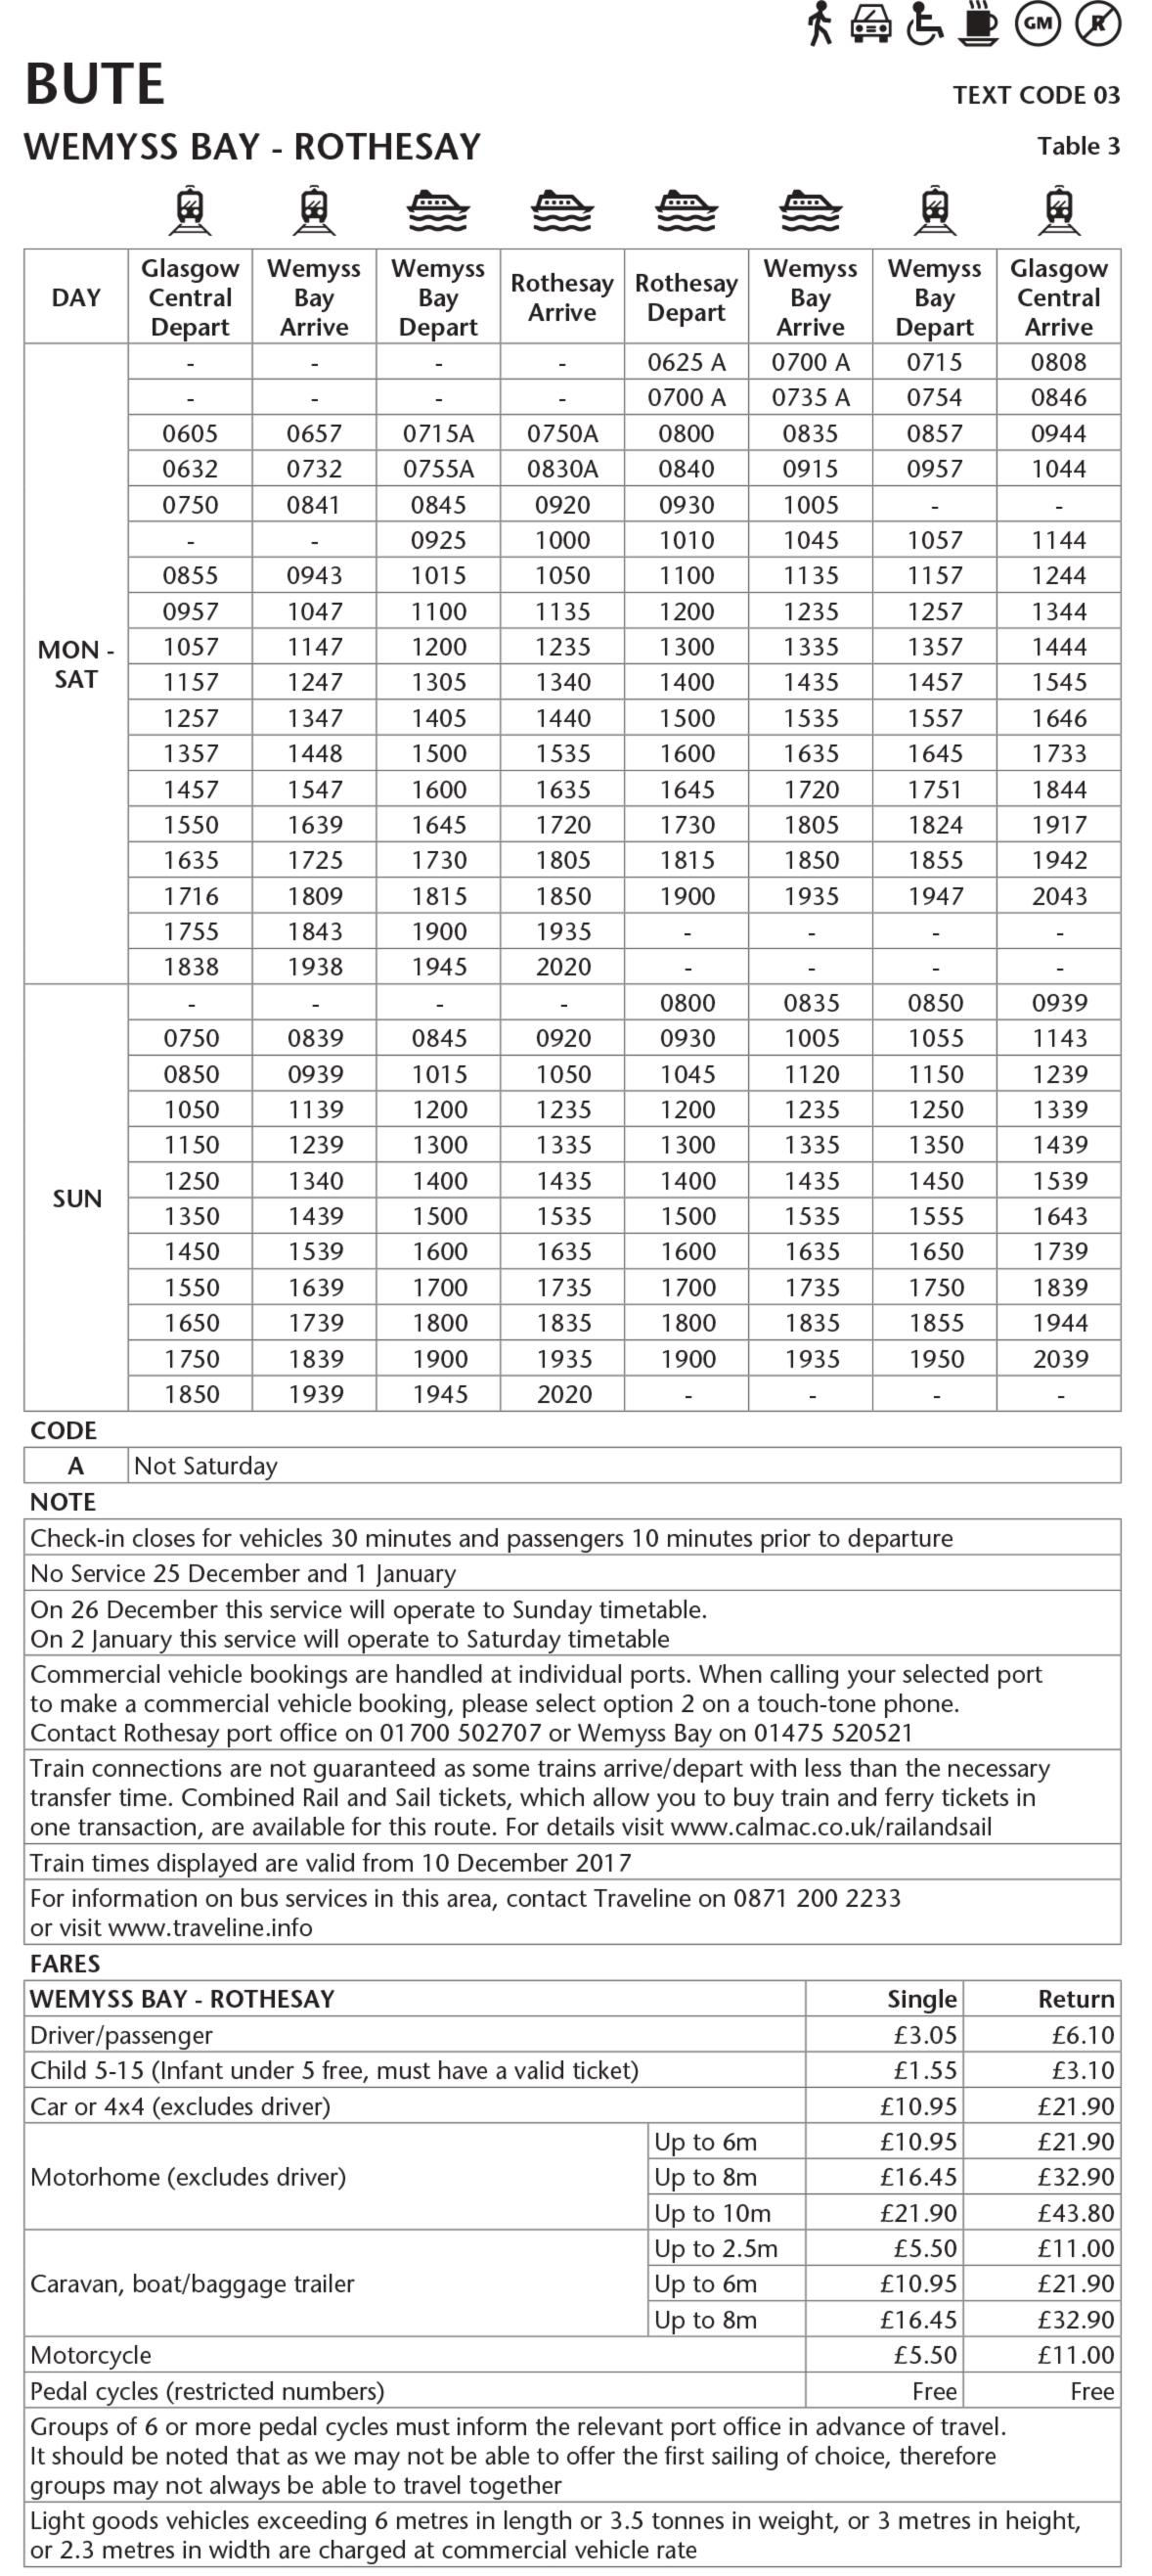 Table 3 Wemyss Bay - Rothesay Winter 2016-17 - This image is currently not accessible to screen readers. Please phone 0800 066 5000 for timetable details.